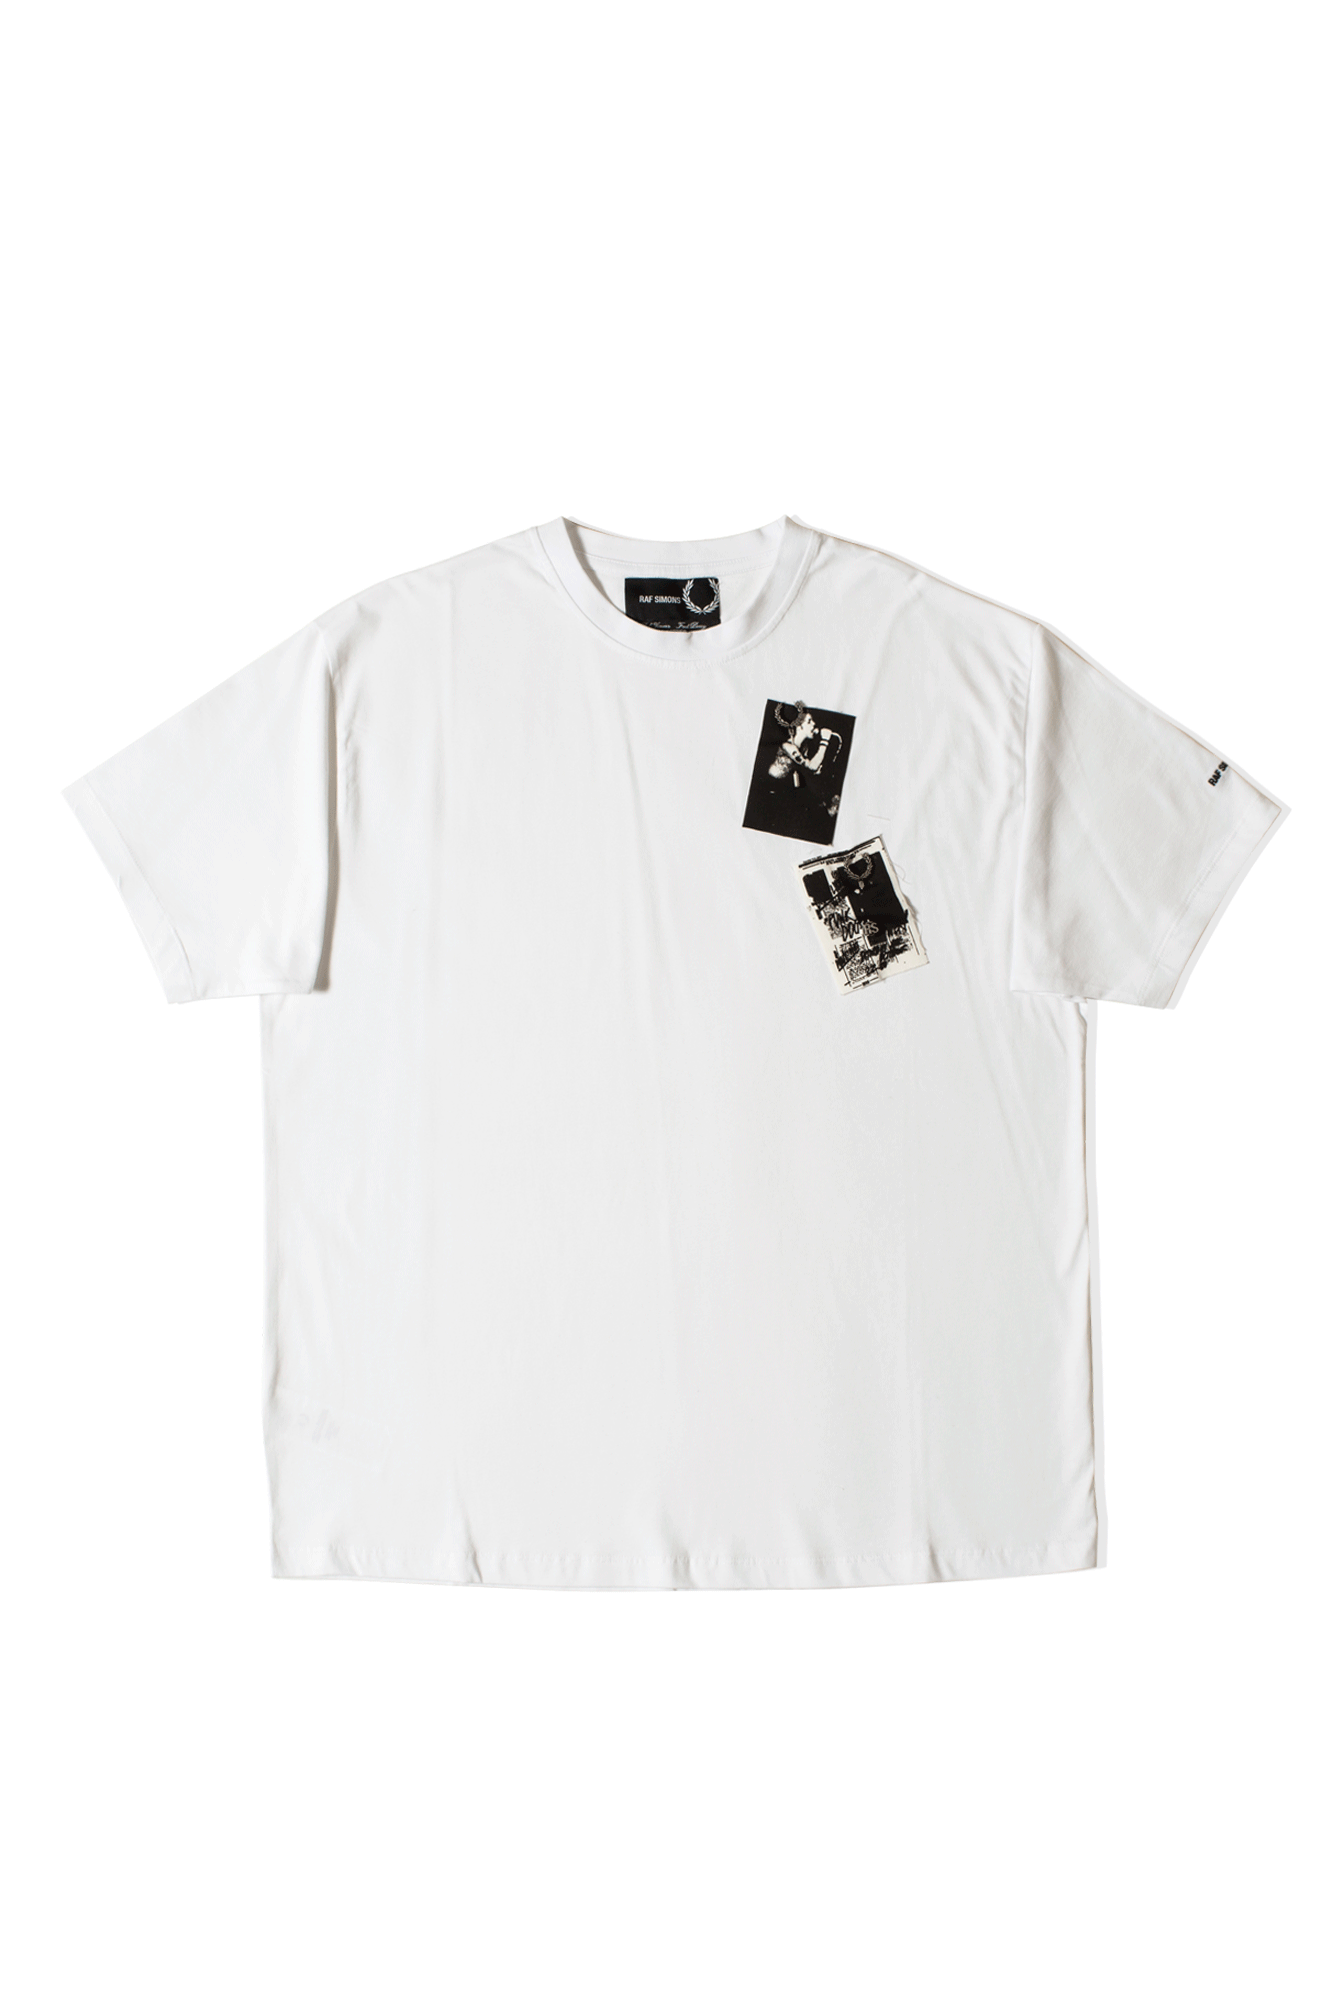 Raf Simons Printed Patch T-Shirt White